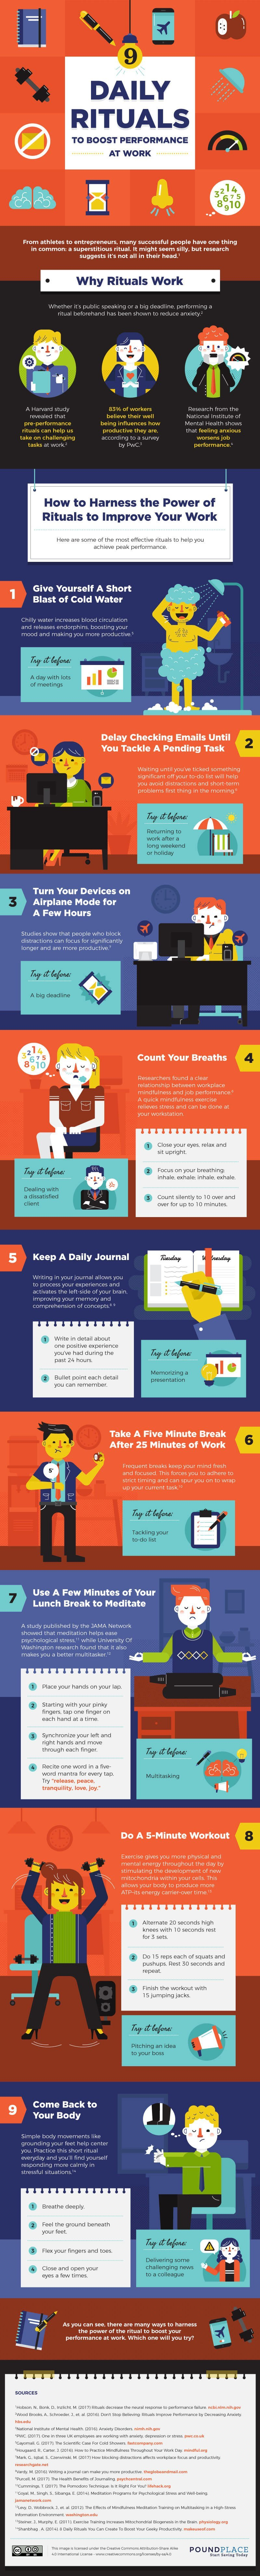 9 Daily Rituals to Boost Your Performance at Work (Infographic)